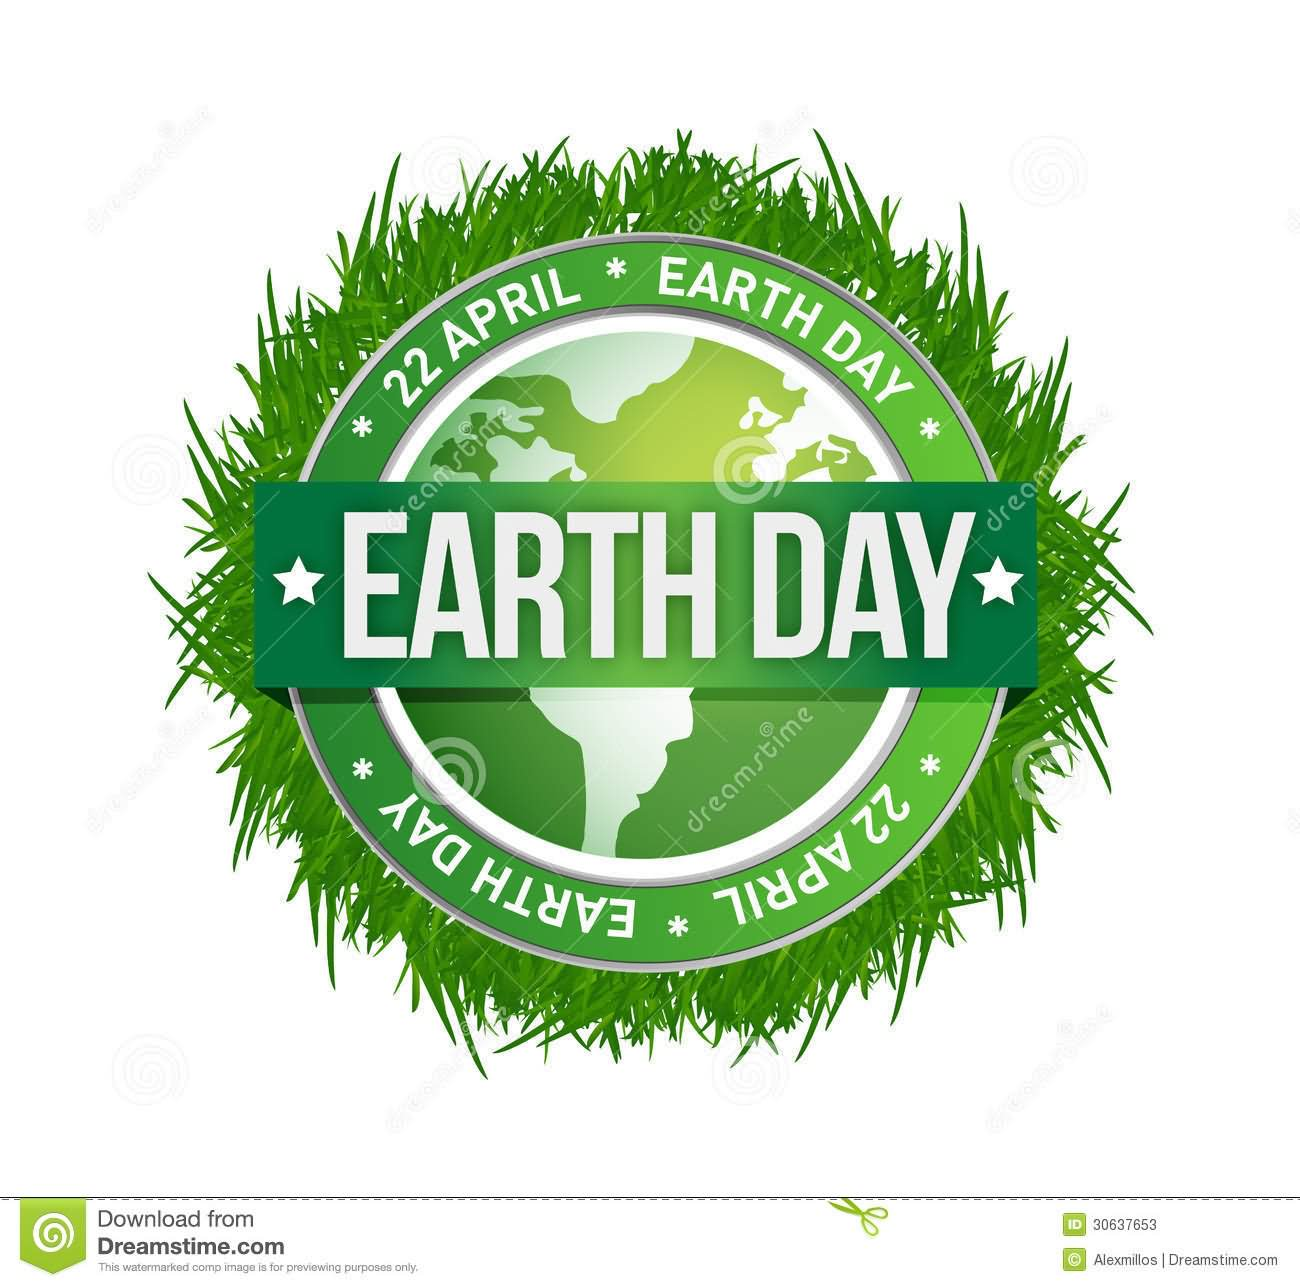 50 Most Wonderful Earth Day Wishes Pictures And Images